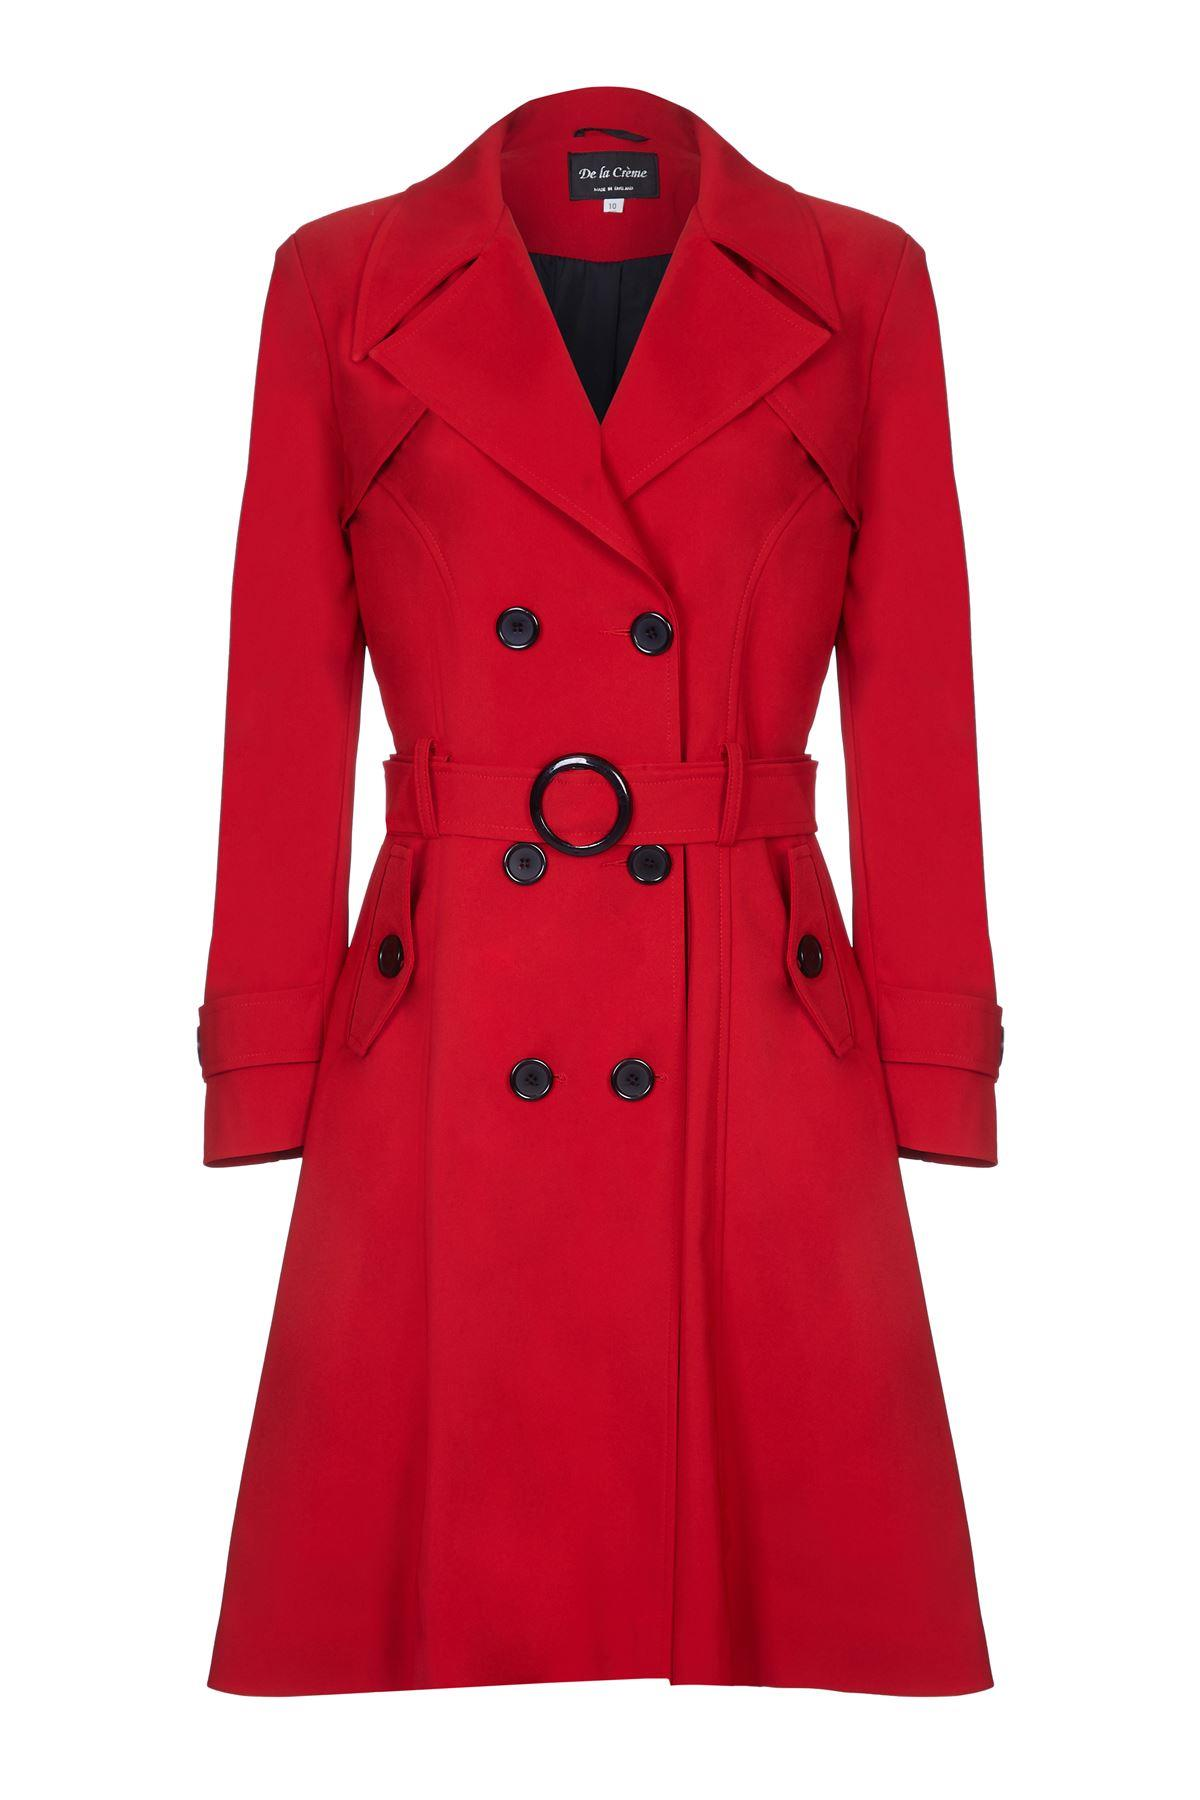 De La Creme - Red Womens Spring Belted Trench Coat